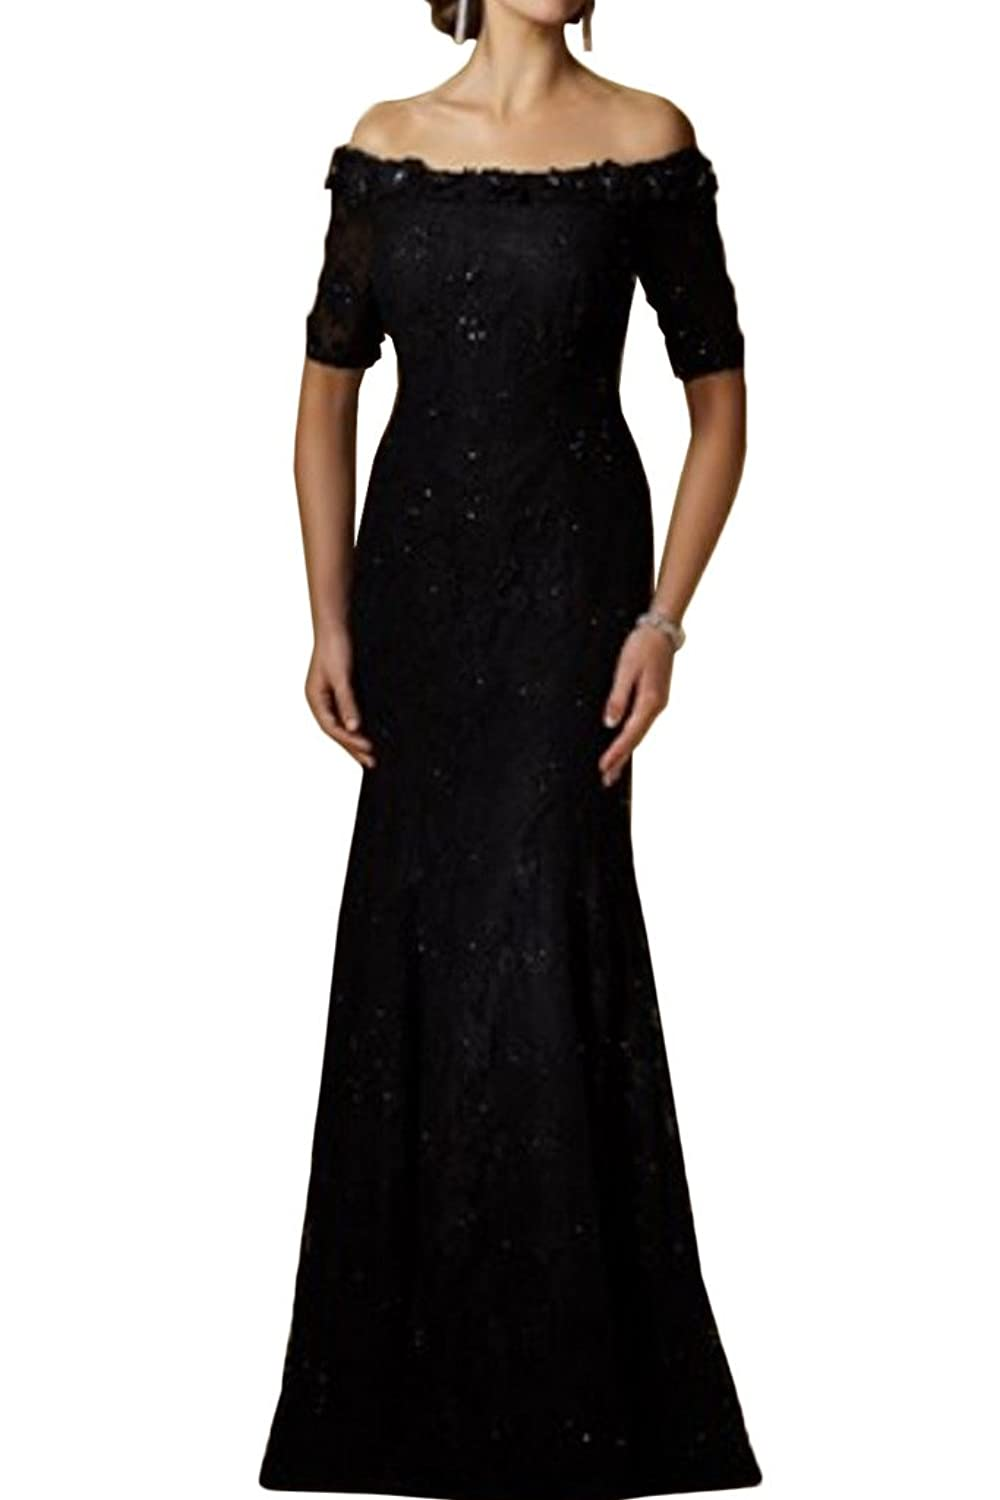 Charm Bridal Sexy Off Shoulder Black Lace Mother of the Bride Dress with Sleeves